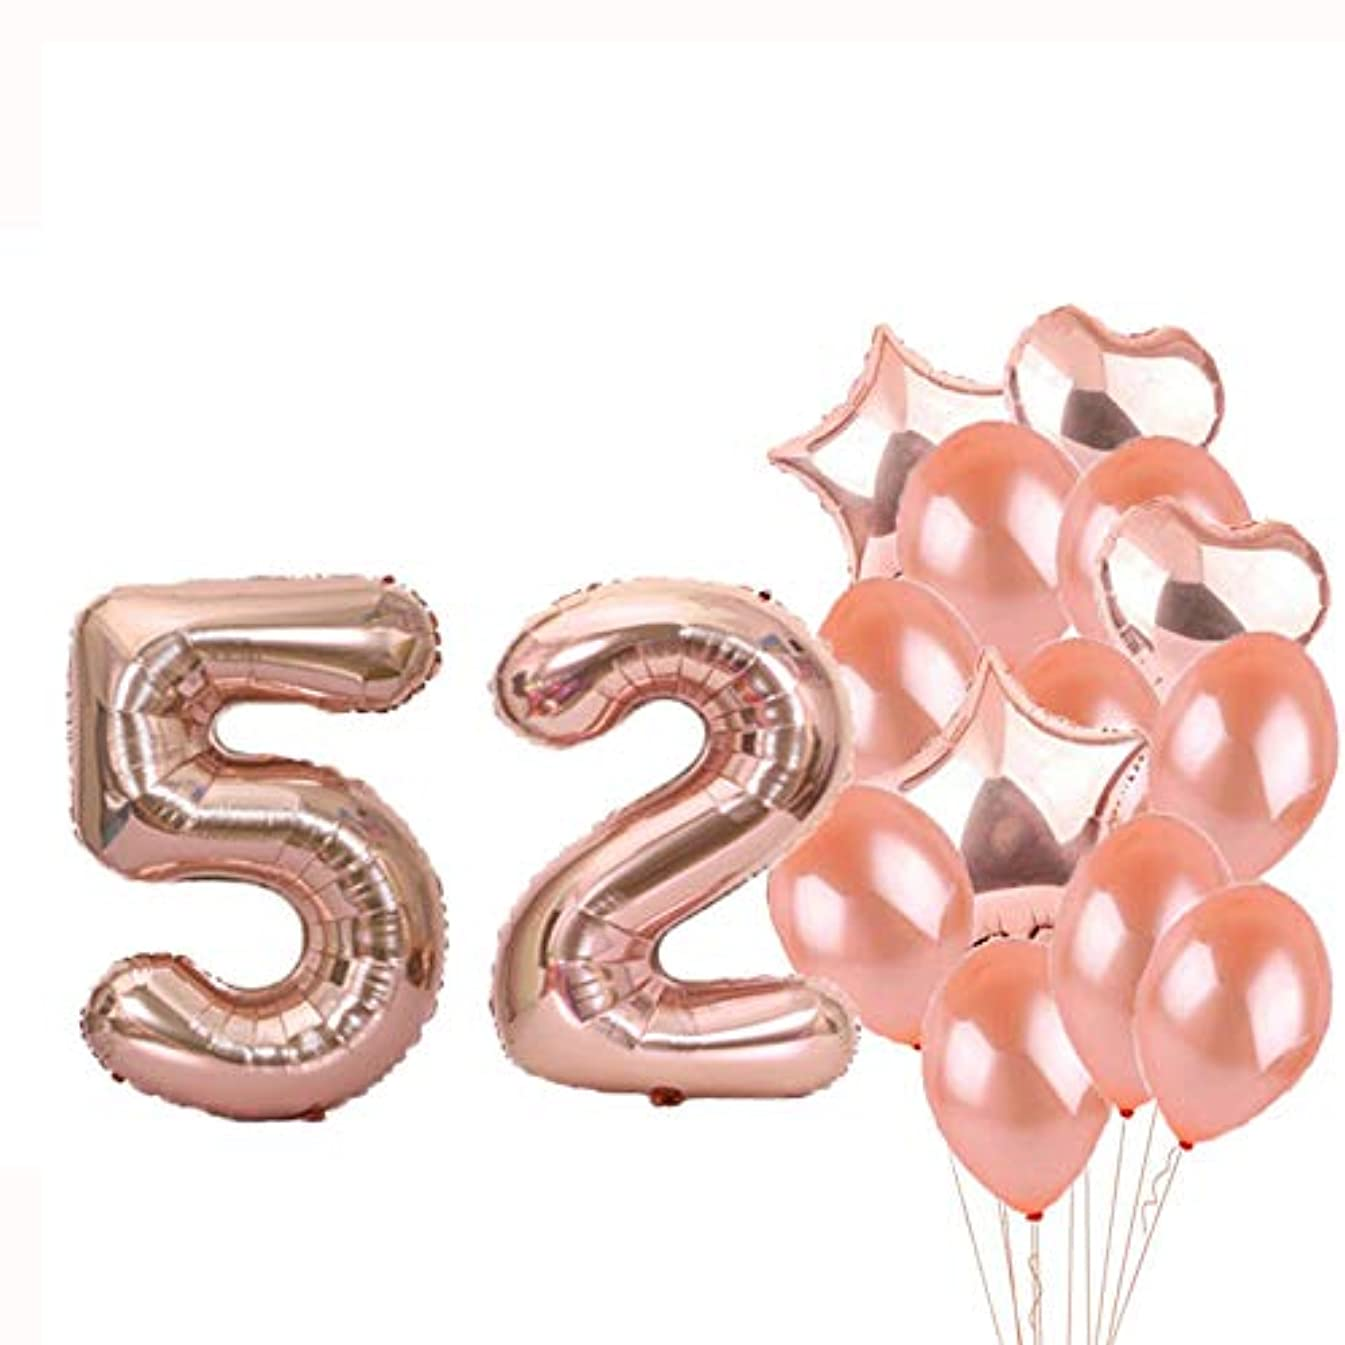 Sweet 52th Birthday Decorations Party Supplies,Rose Gold Number 52 Balloons,52th Foil Mylar Balloons Latex Balloon Decoration,Great 52th Birthday Gifts for Girls,Women,Men,Photo Props